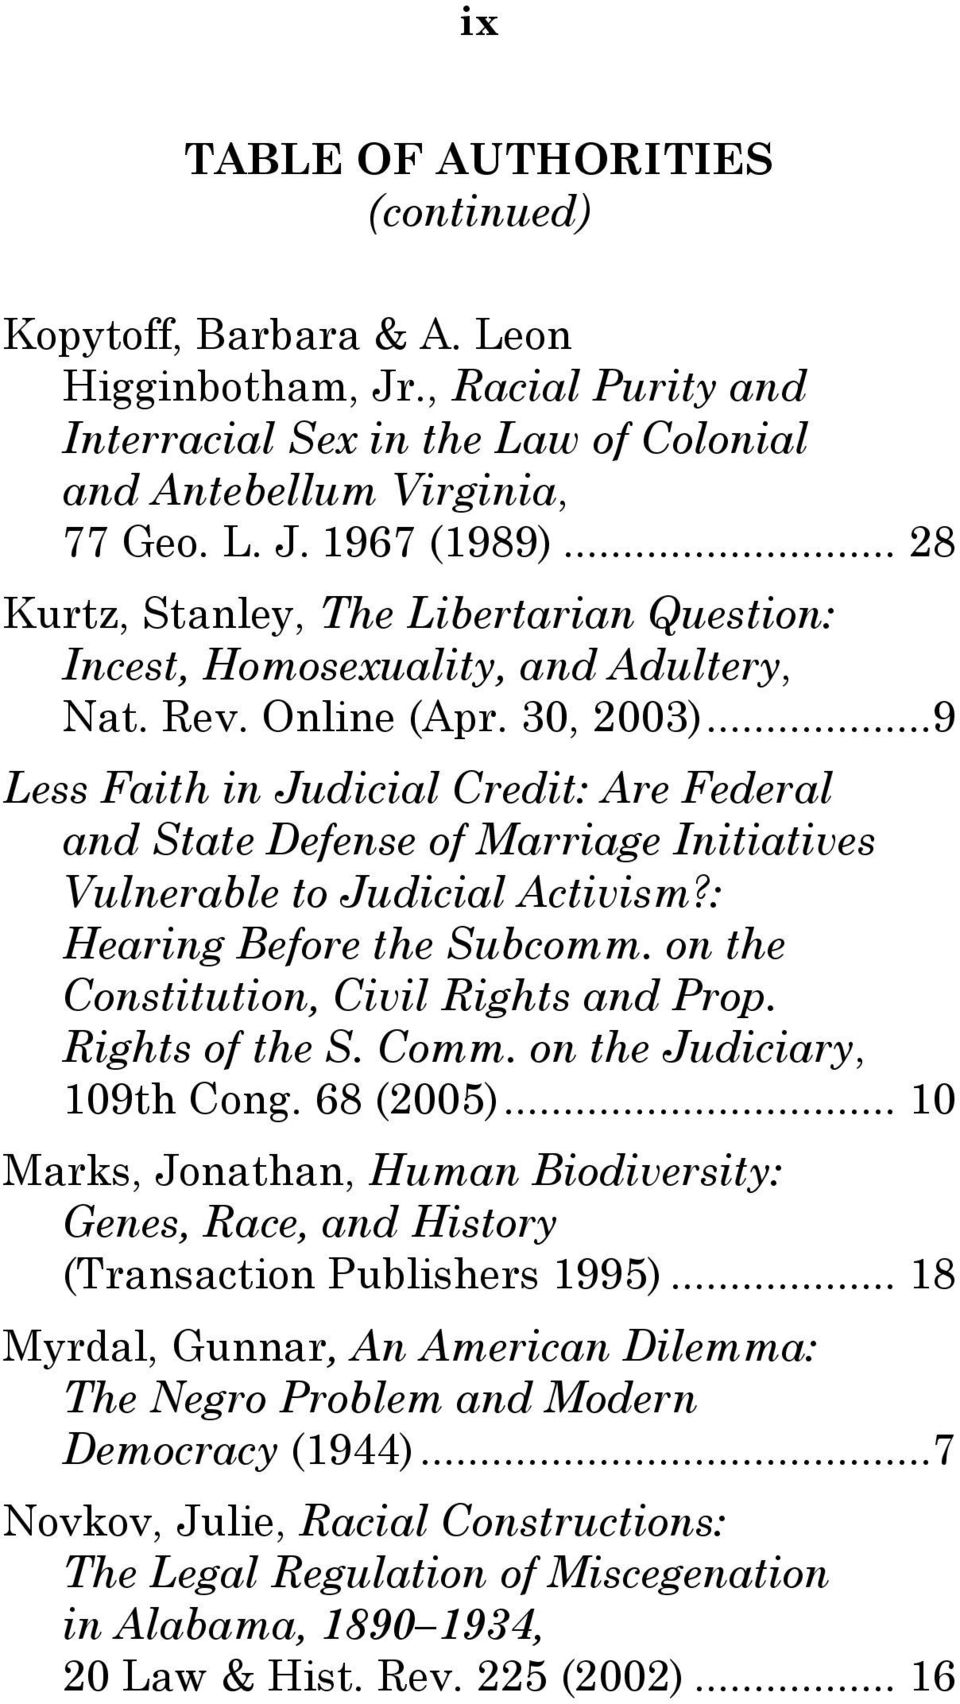 ..9 Less Faith in Judicial Credit: Are Federal and State Defense of Marriage Initiatives Vulnerable to Judicial Activism?: Hearing Before the Subcomm. on the Constitution, Civil Rights and Prop.